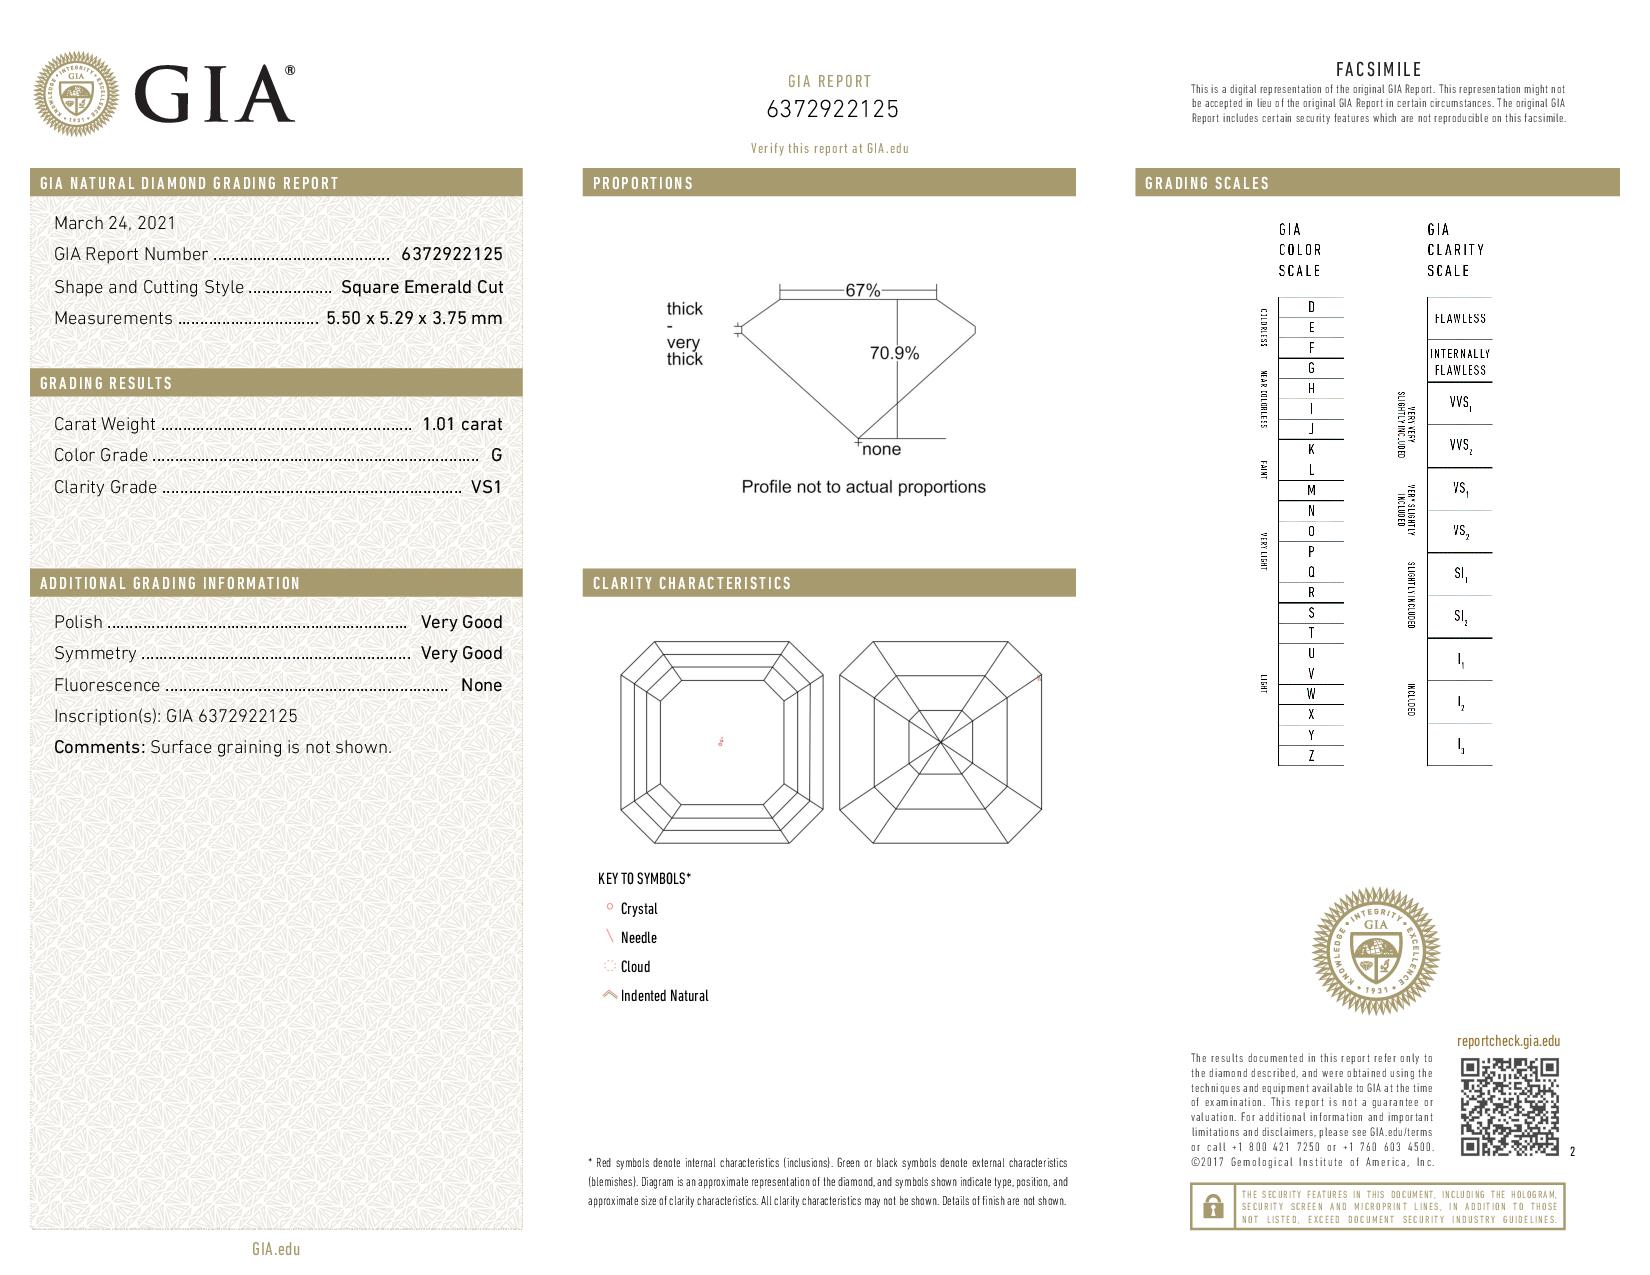 This is a 1.01 carat asscher shape, G color, VS1 clarity natural diamond accompanied by a GIA grading report.